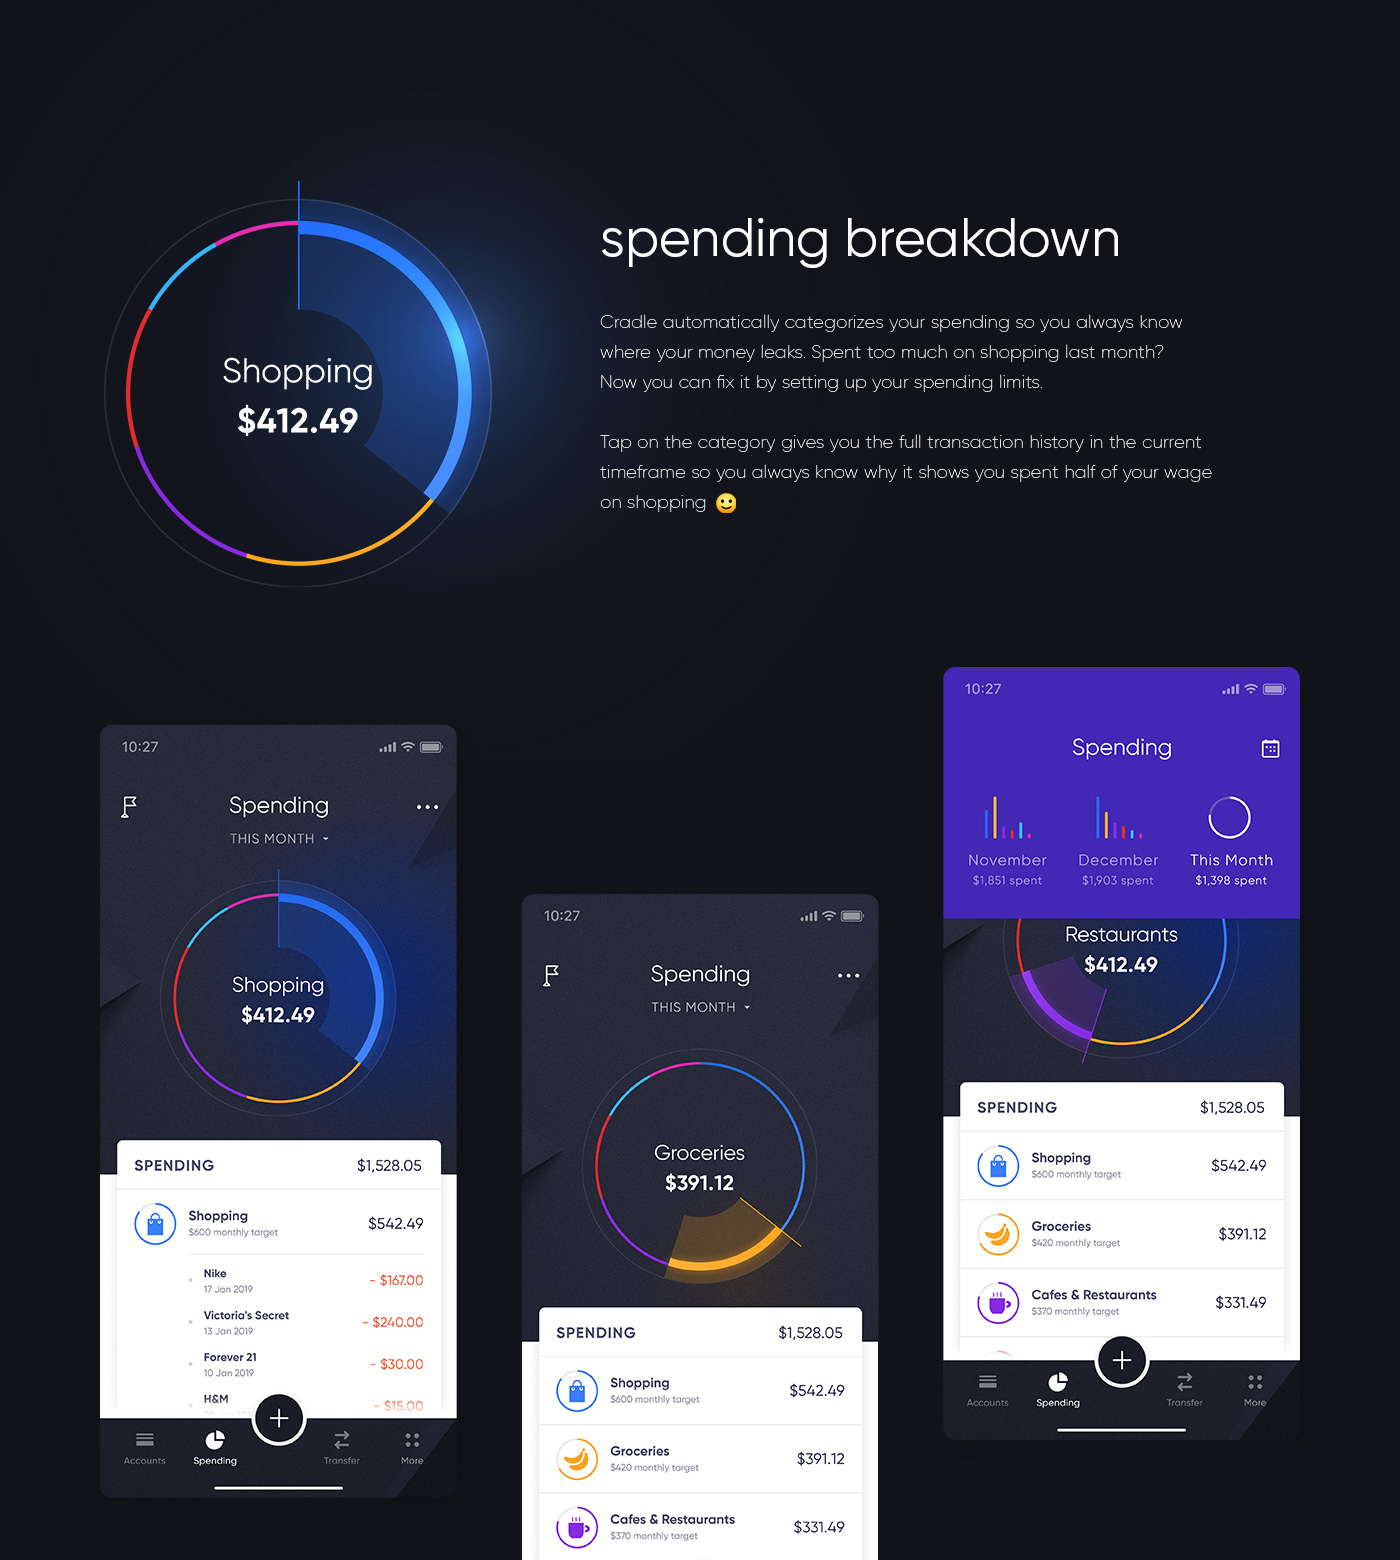 Cradle app design — spending